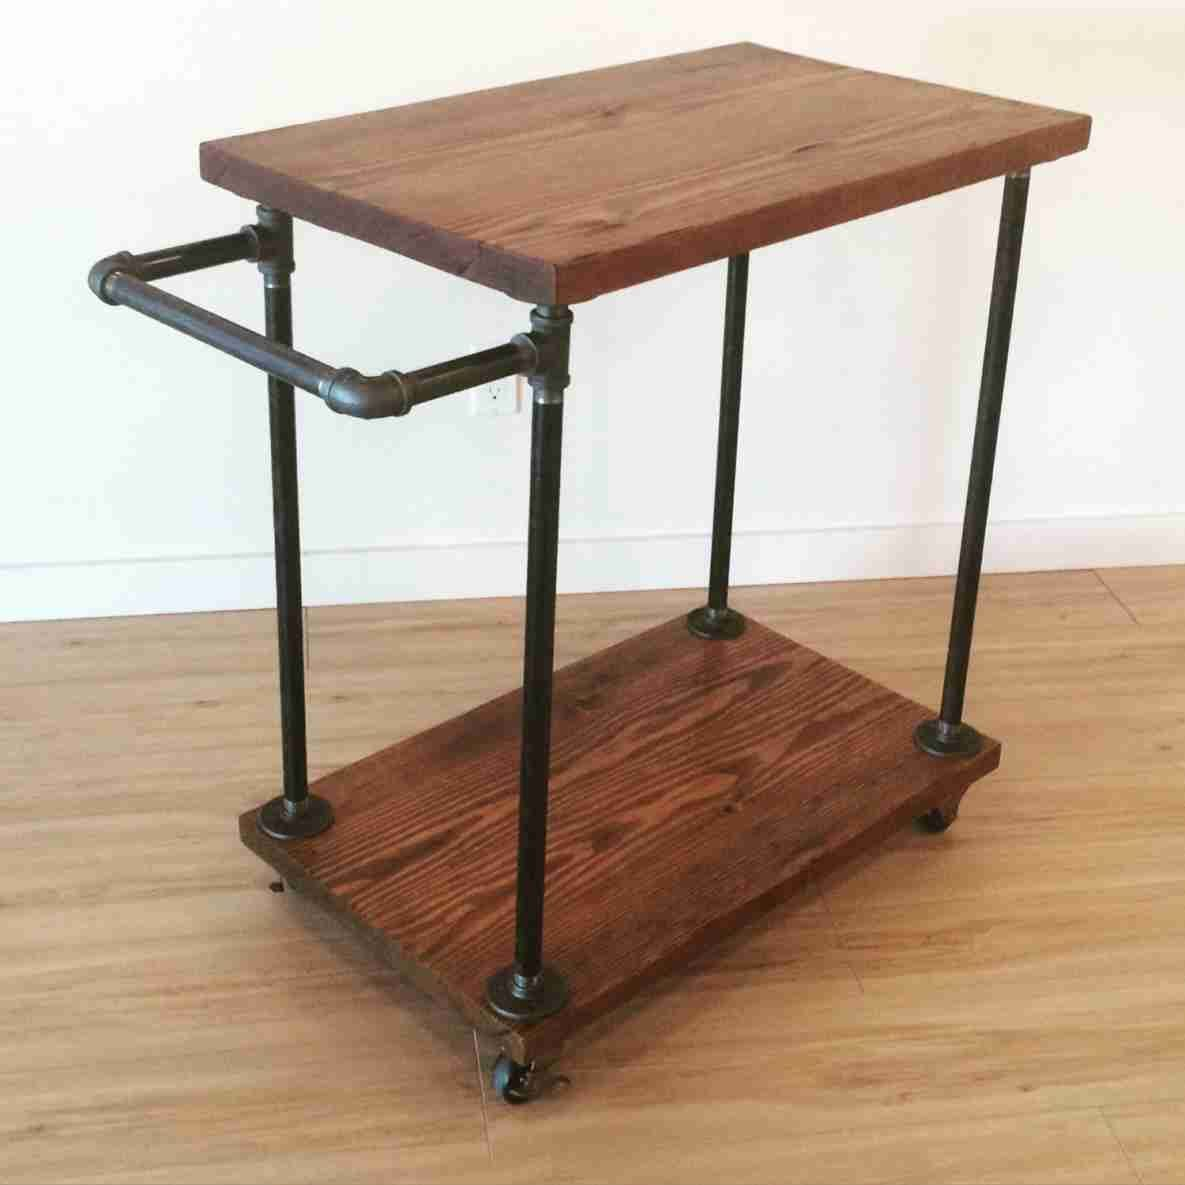 Cast Iron Pipe Reclaimed Fir Bar Cart Everything Is Handmade To Order Using Locally Salvaged Timbers And Eco Friendly Finishes Can Be Customized Any